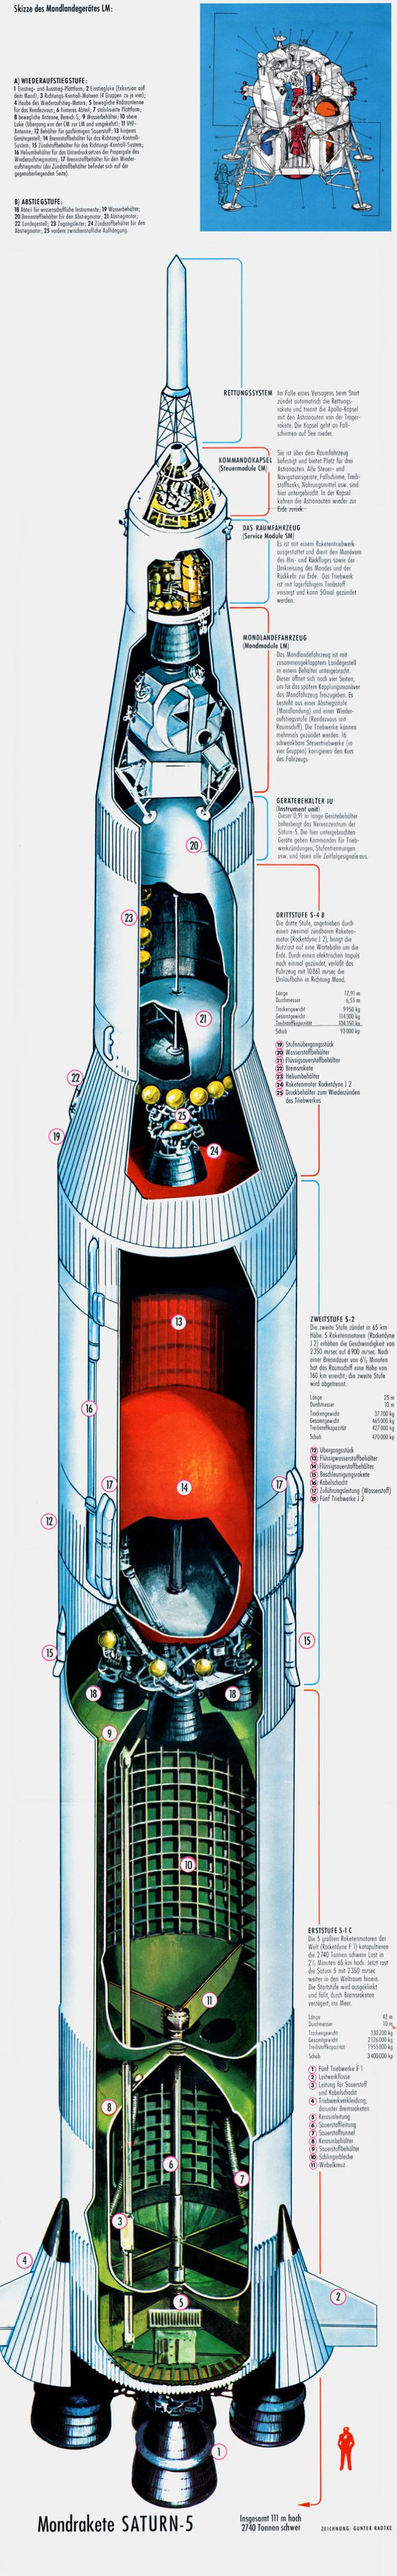 The definitive Saturn V cutaway you always wanted on your wall Part 2